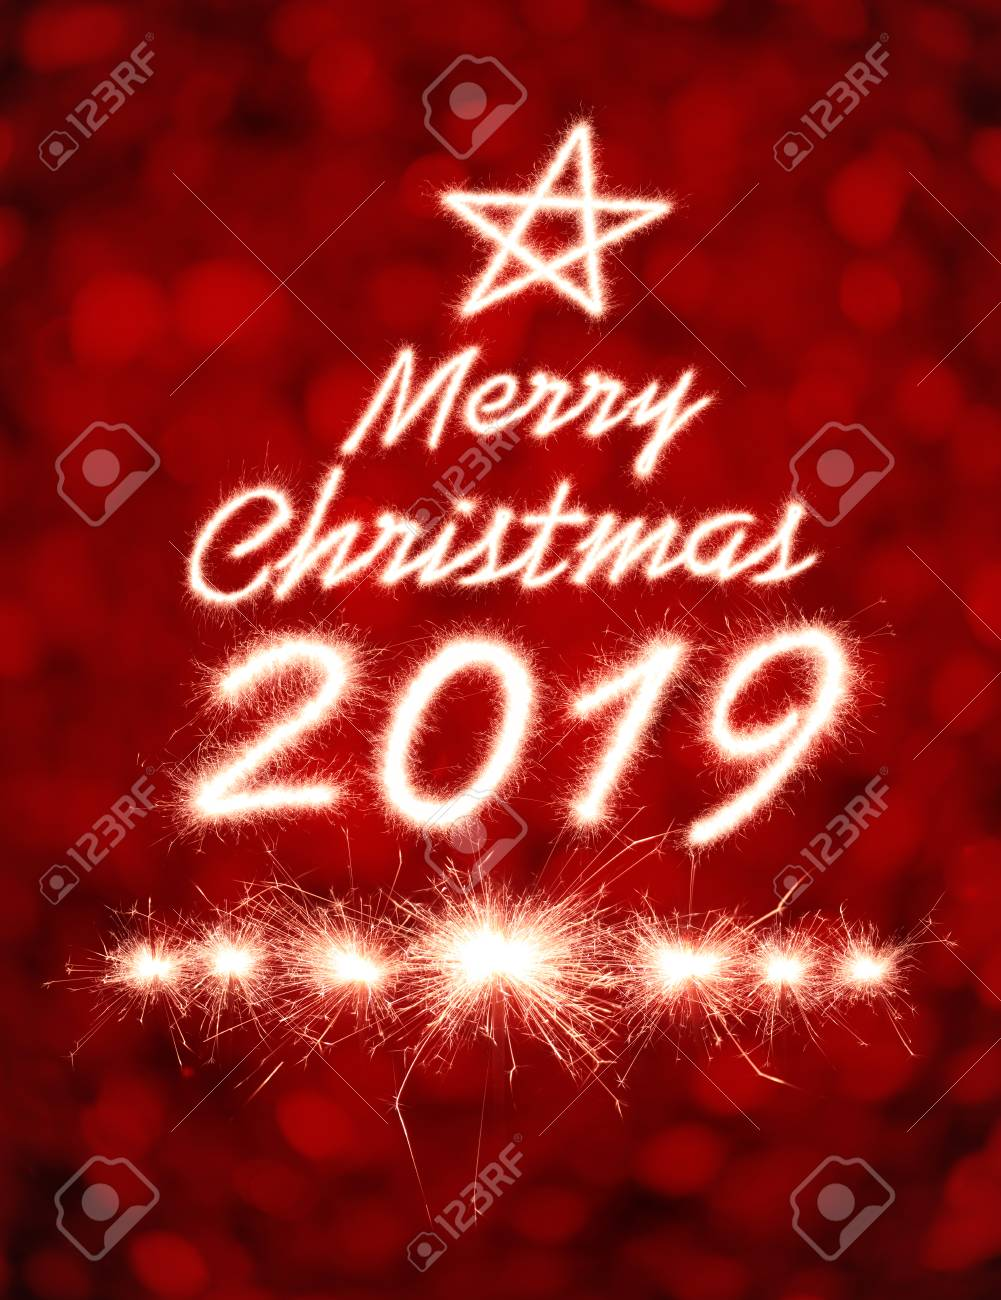 Merry Christmas 2019 Images.Merry Christmas 2019 Written With Sparkle Firework Over Bokeh